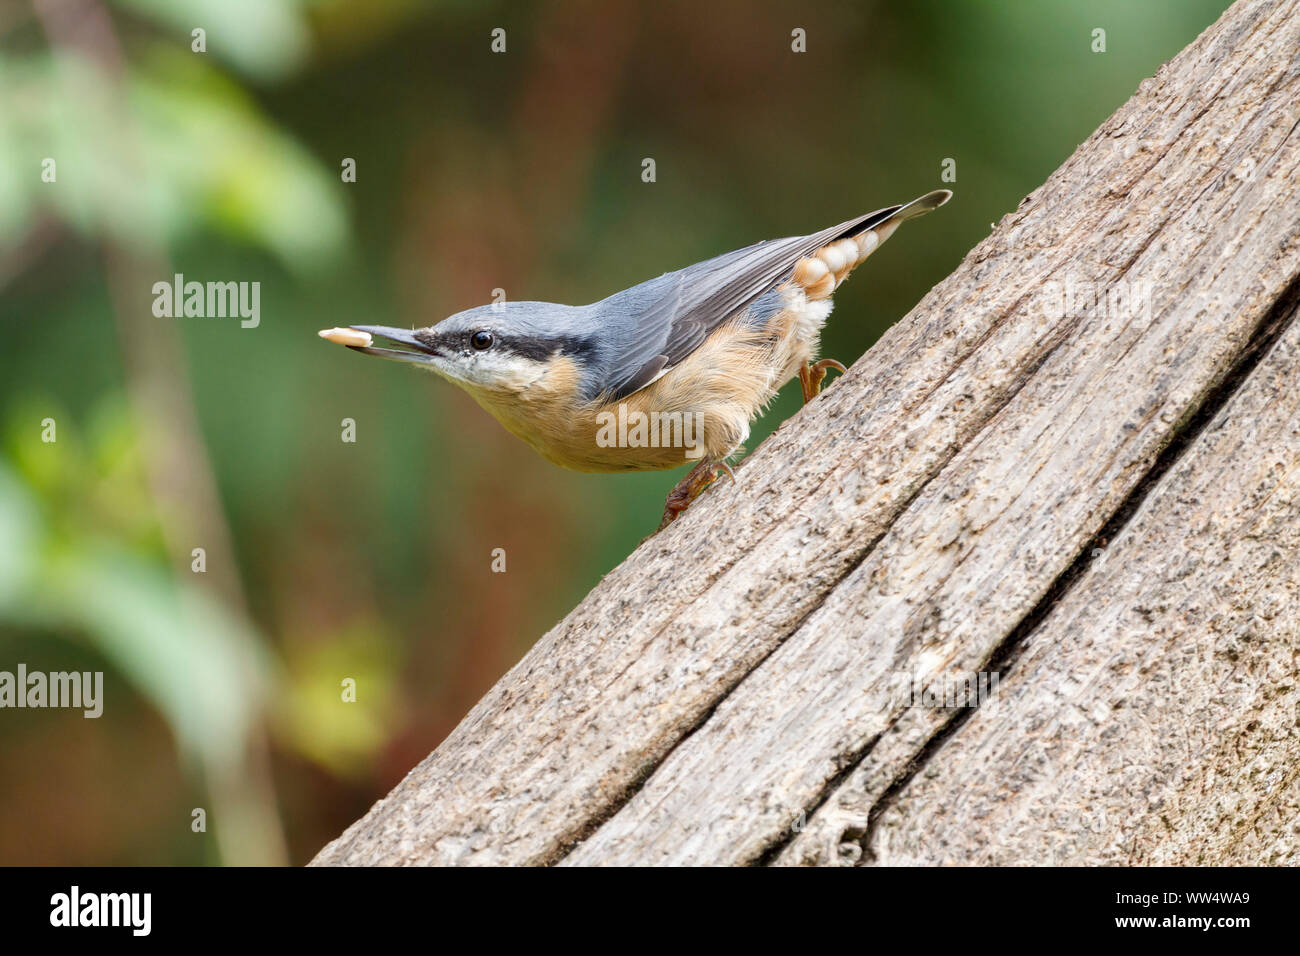 Nuthatch (Sitta europaea) hiding seeds in crevices. Blue grey upperparts buff underparts  chestnut flanks long black bill and black stripe through eye Stock Photo